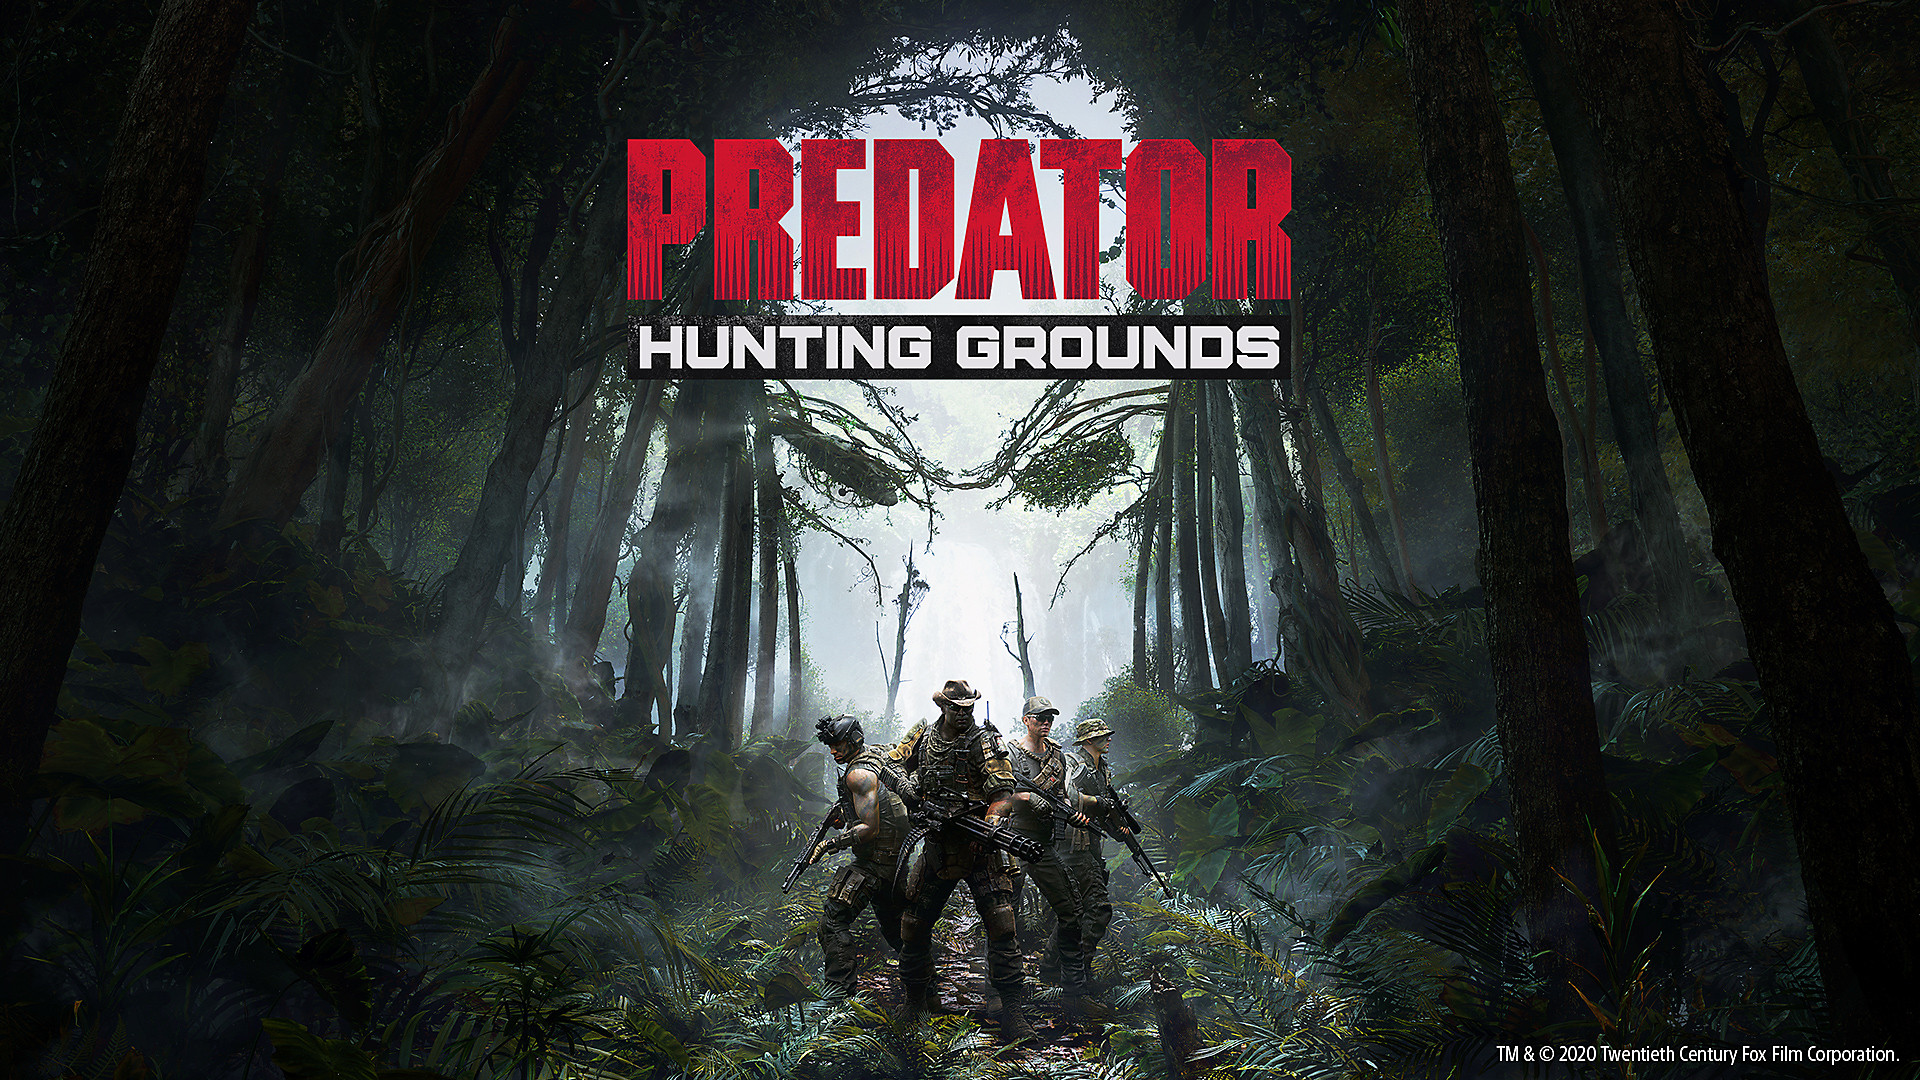 Predator Hunting Grounds Desktop Wallpaper 2